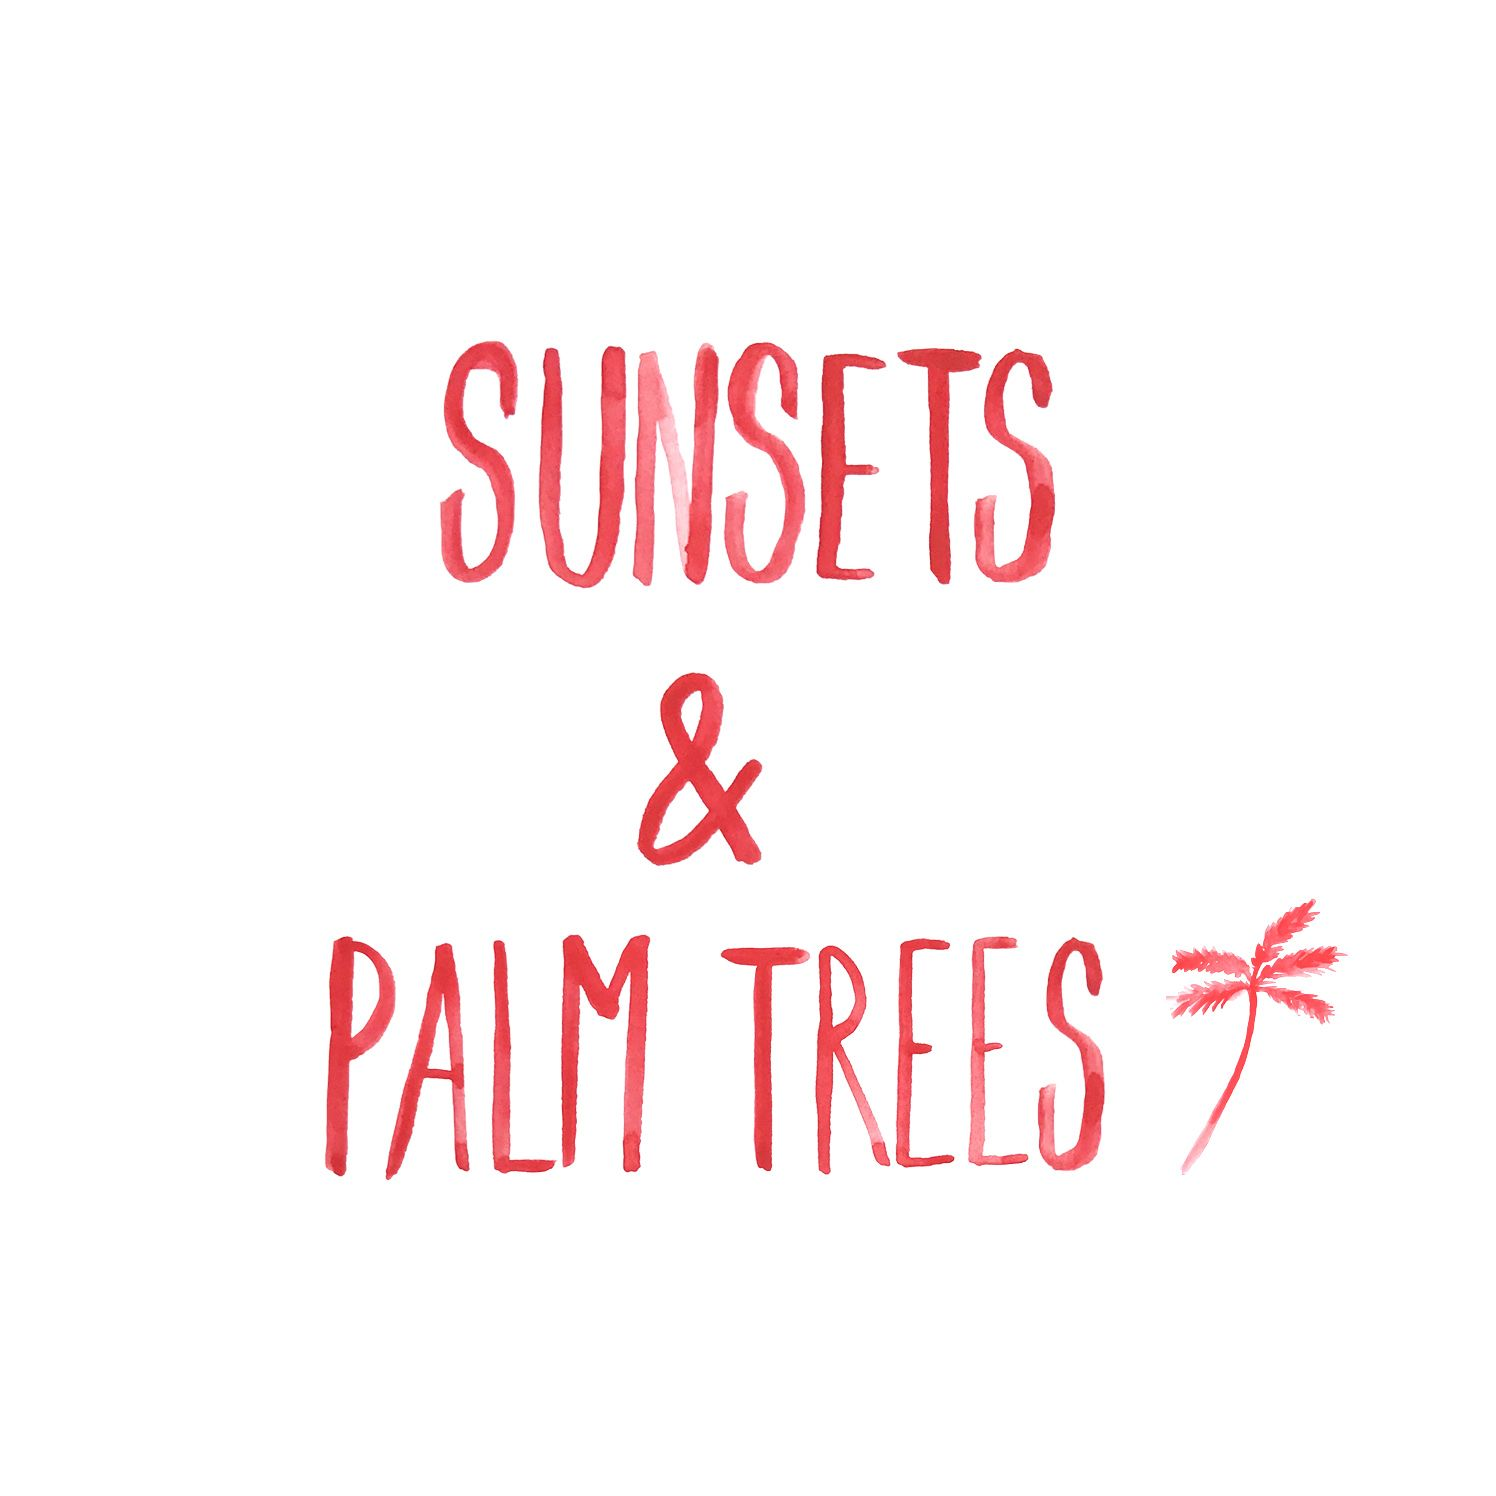 Sunsets & Palm Trees By My Paperstories Instagram.com